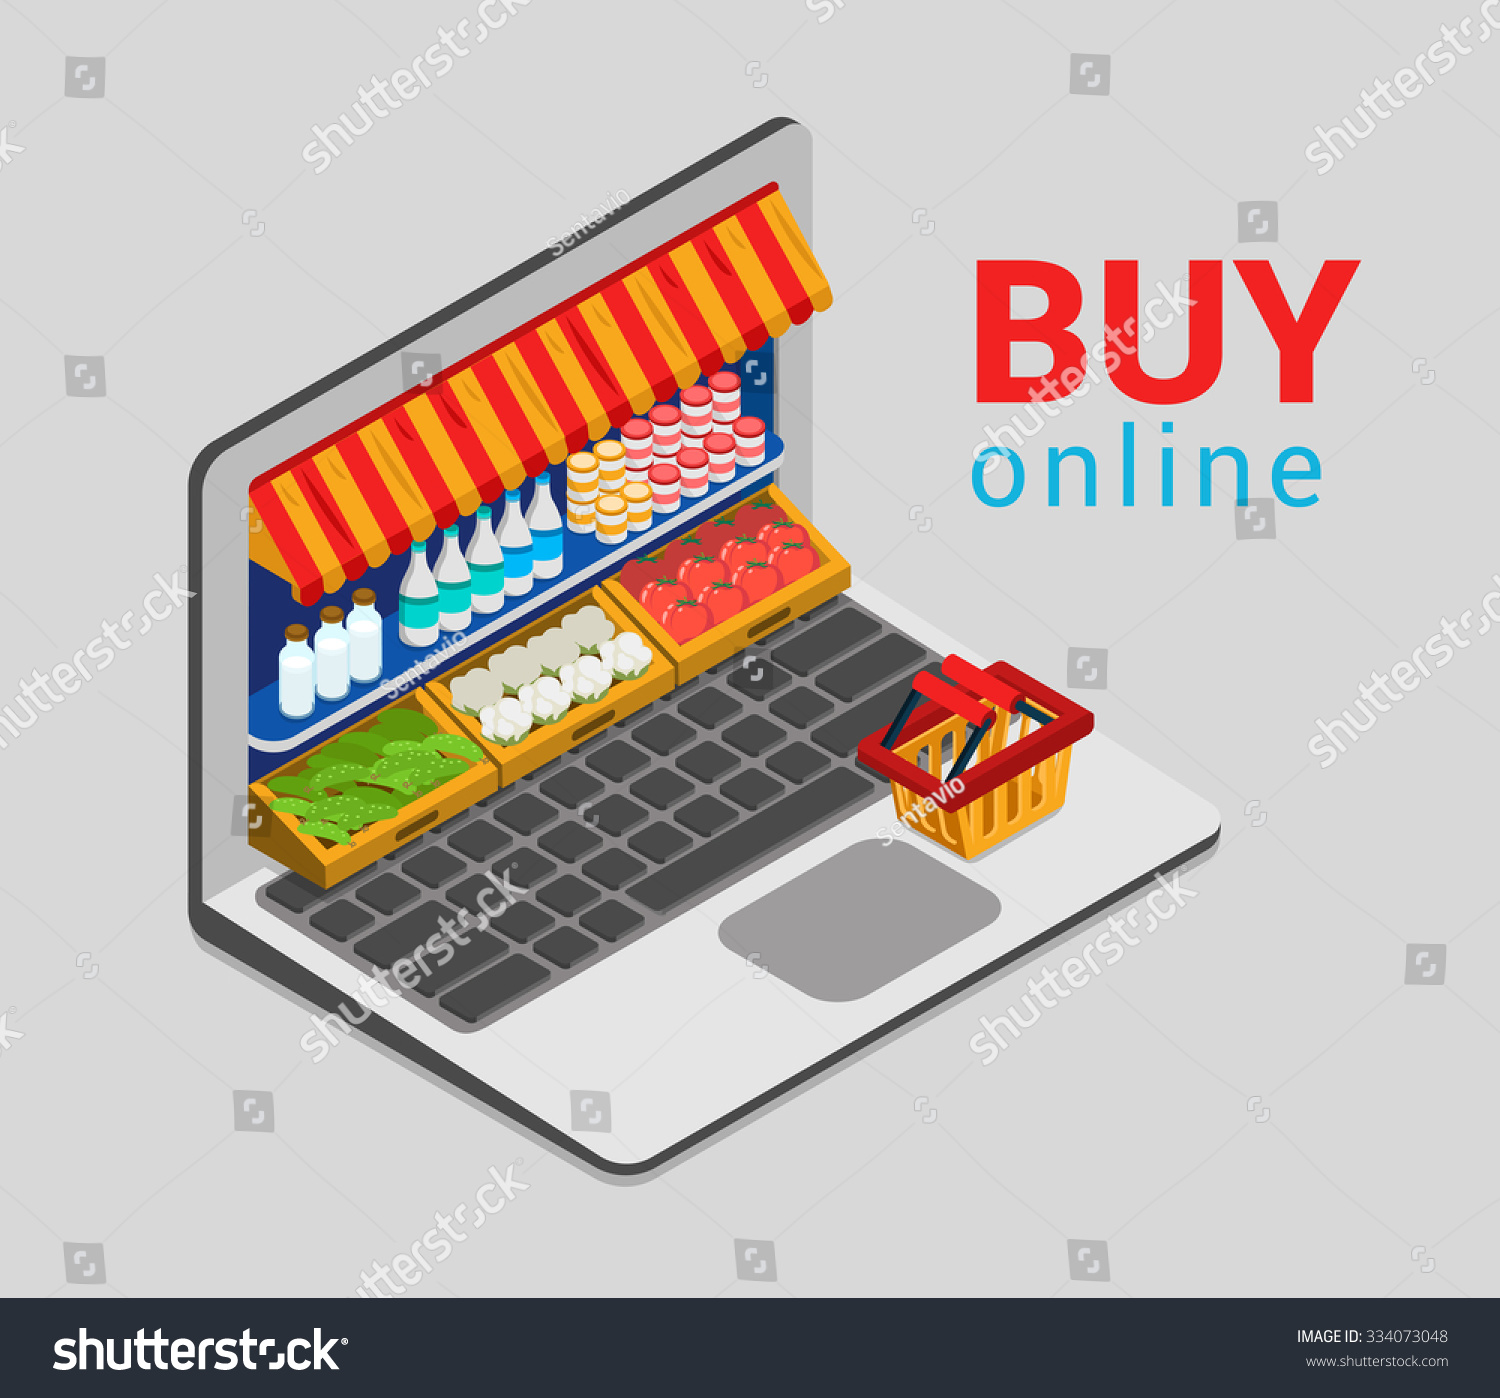 laptop buy online grocery shopping ecommerce stock vector. Black Bedroom Furniture Sets. Home Design Ideas